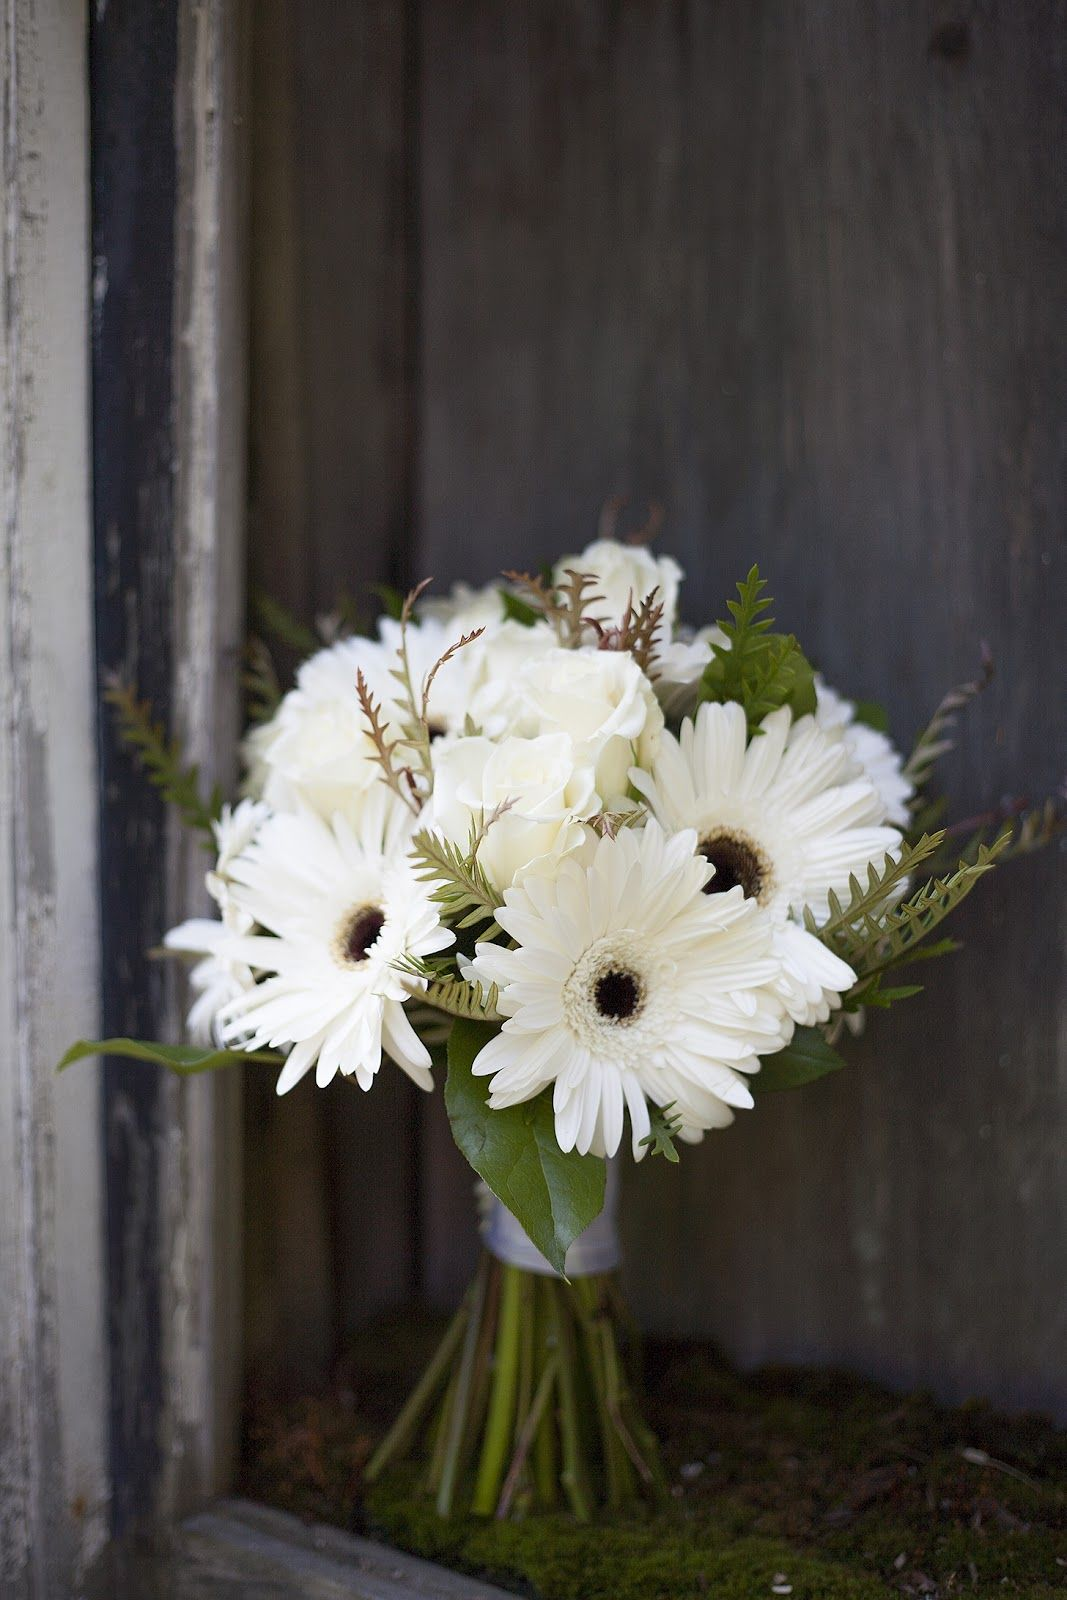 White Hydranga And Baby Breath Bouquets Bouquet Of White Hydrangea Button Mums Gerb Burlap Bouquet Wedding Daisy Bouquet Wedding Flower Bouquet Wedding